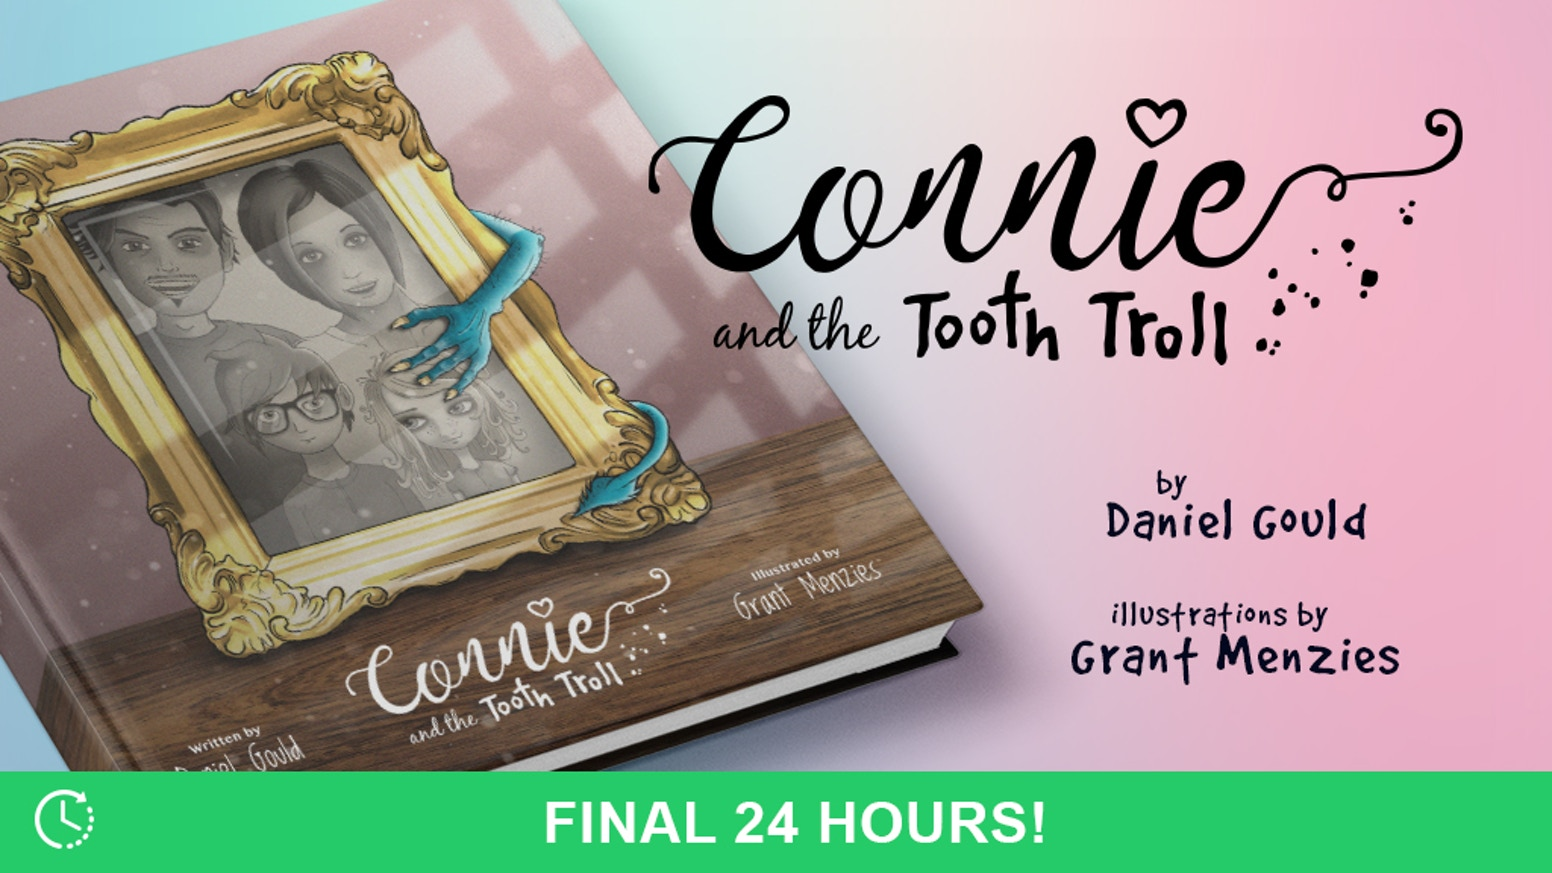 Enter Connie's imaginative world in the first of many adventures with this beautifully written and illustrated childrens book.